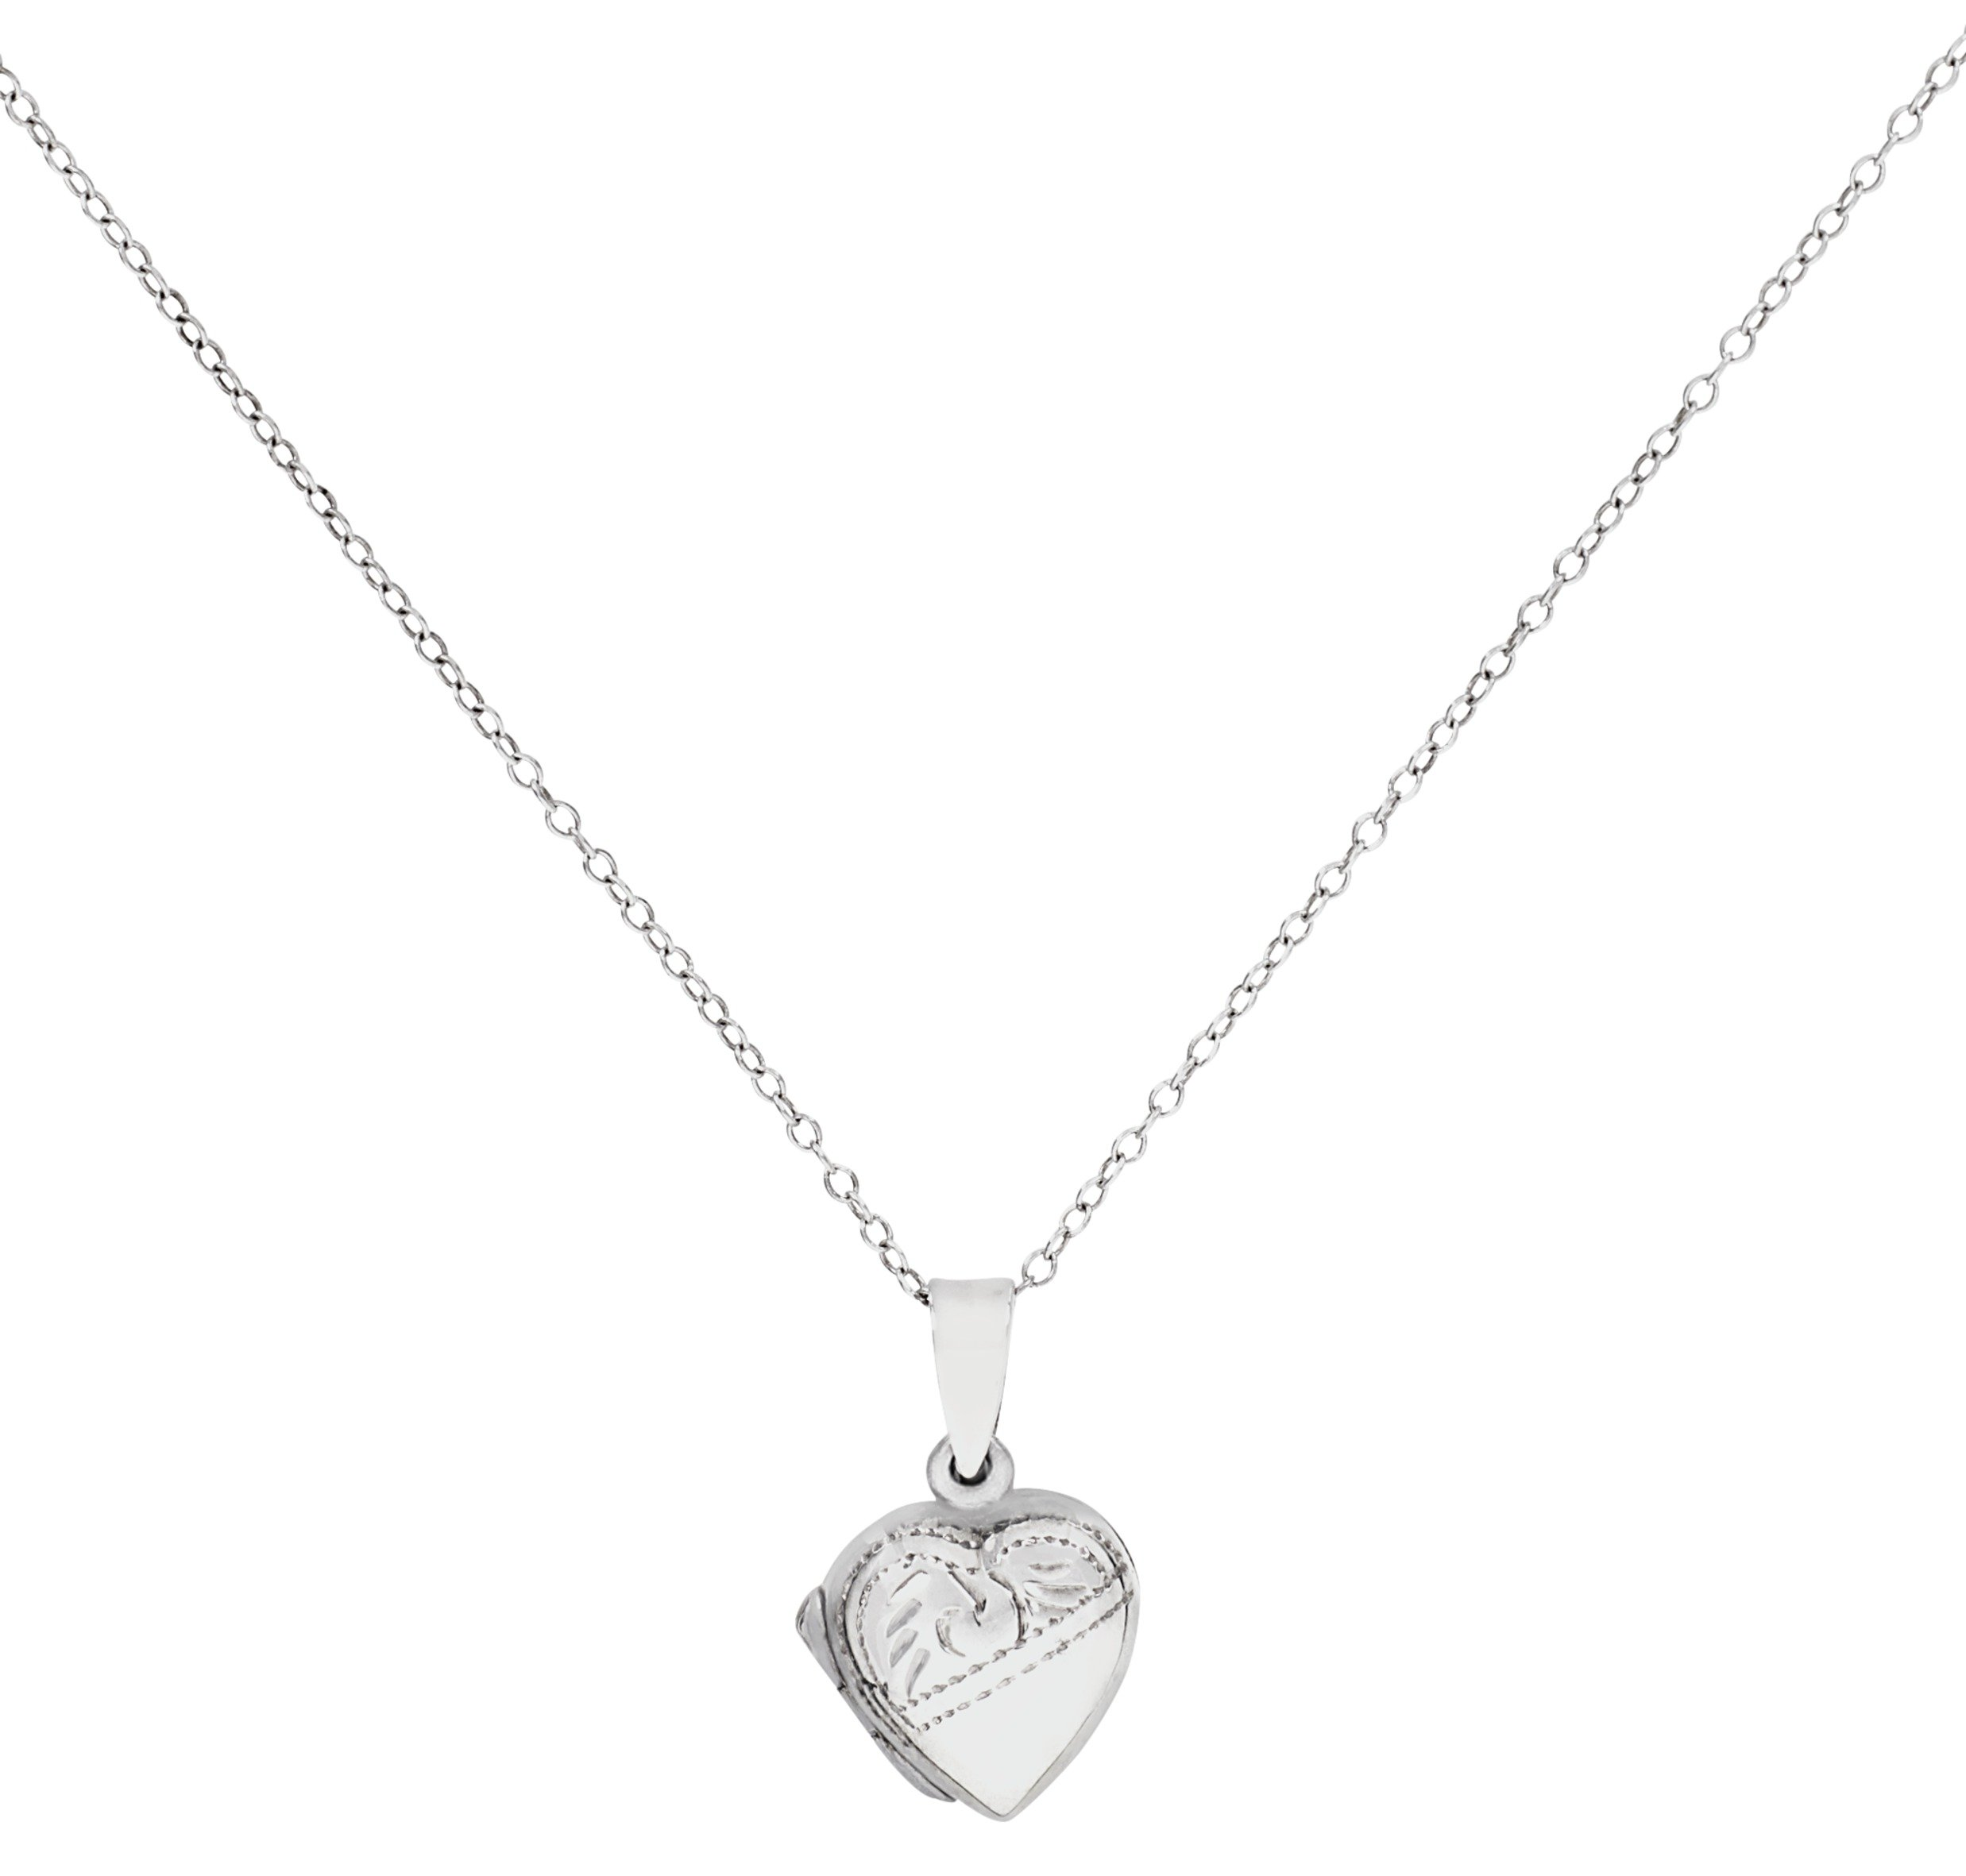 Image of Sterling Silver - Heart Locket Pendant.